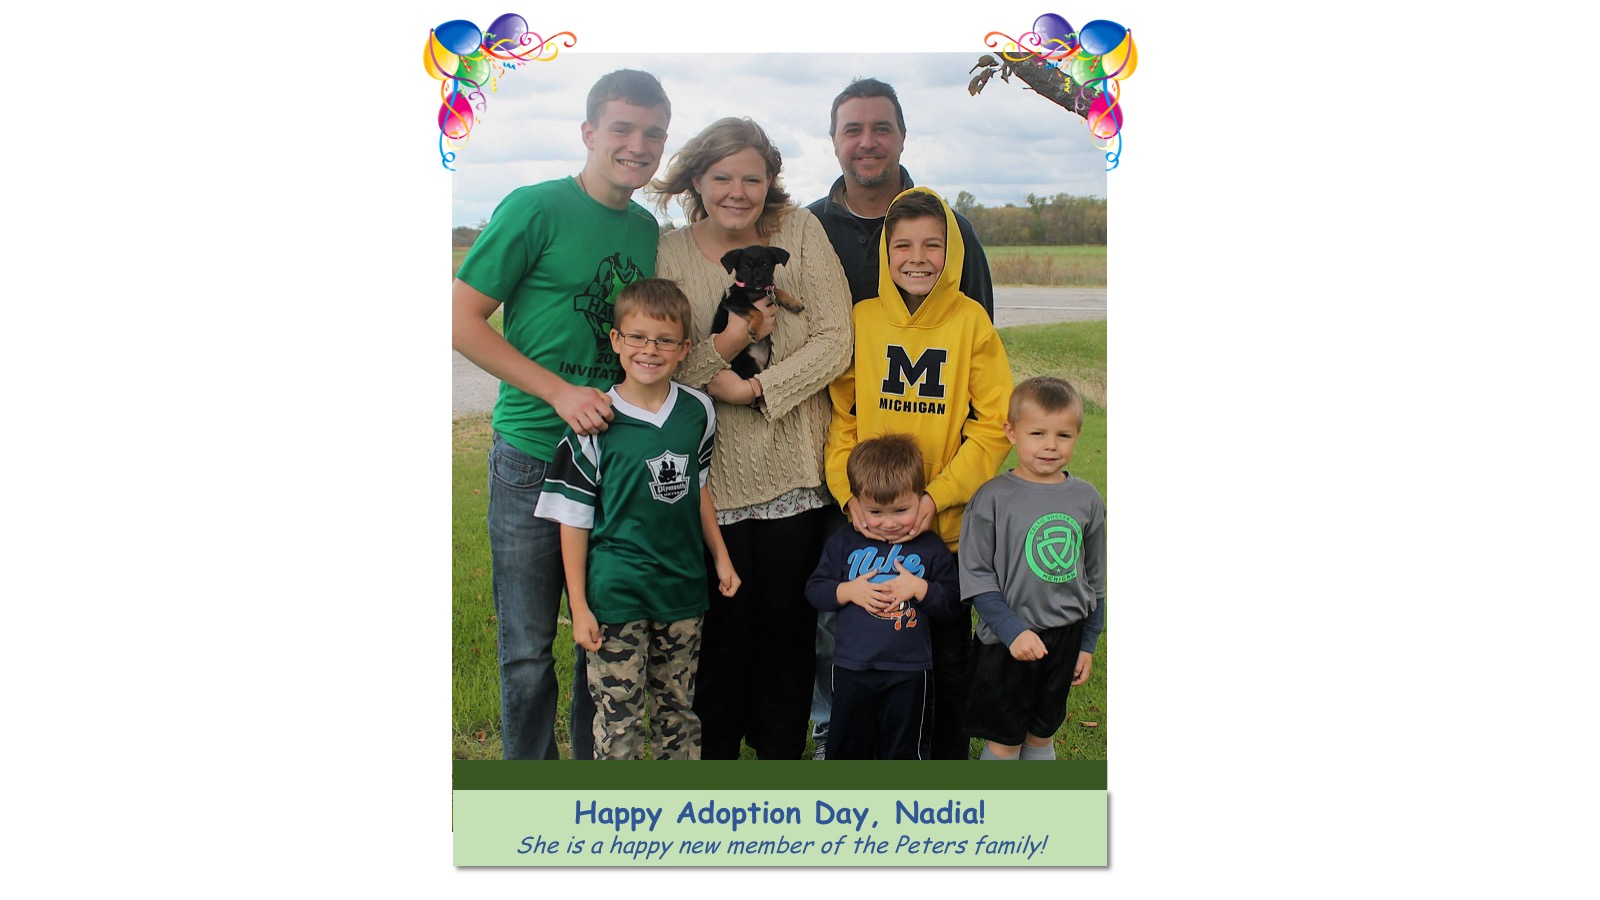 Nadia_Adoption_Photo_2018_.jpg